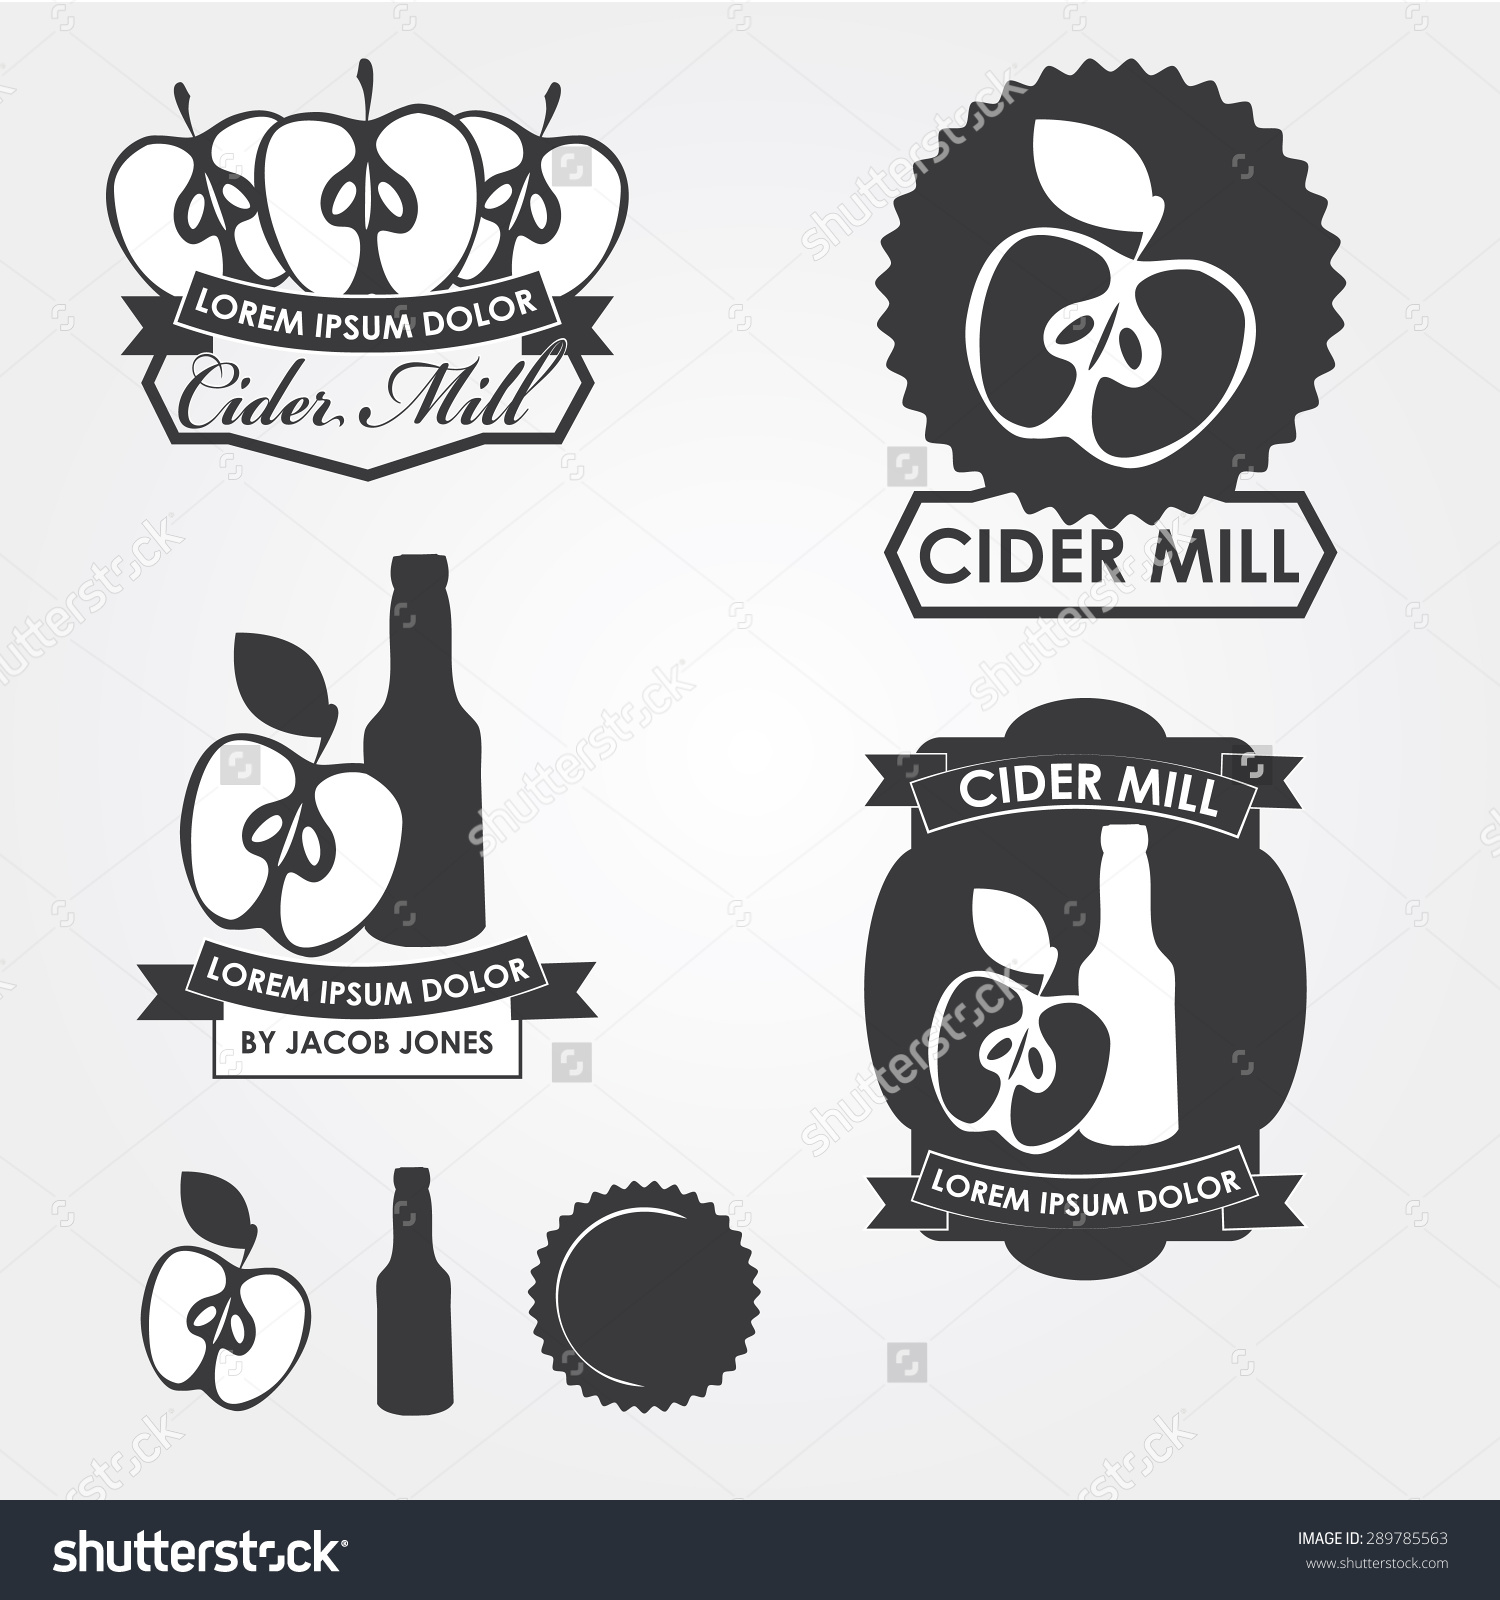 Cider Mill, Emblems, Design Elements Stock Vector Illustration.